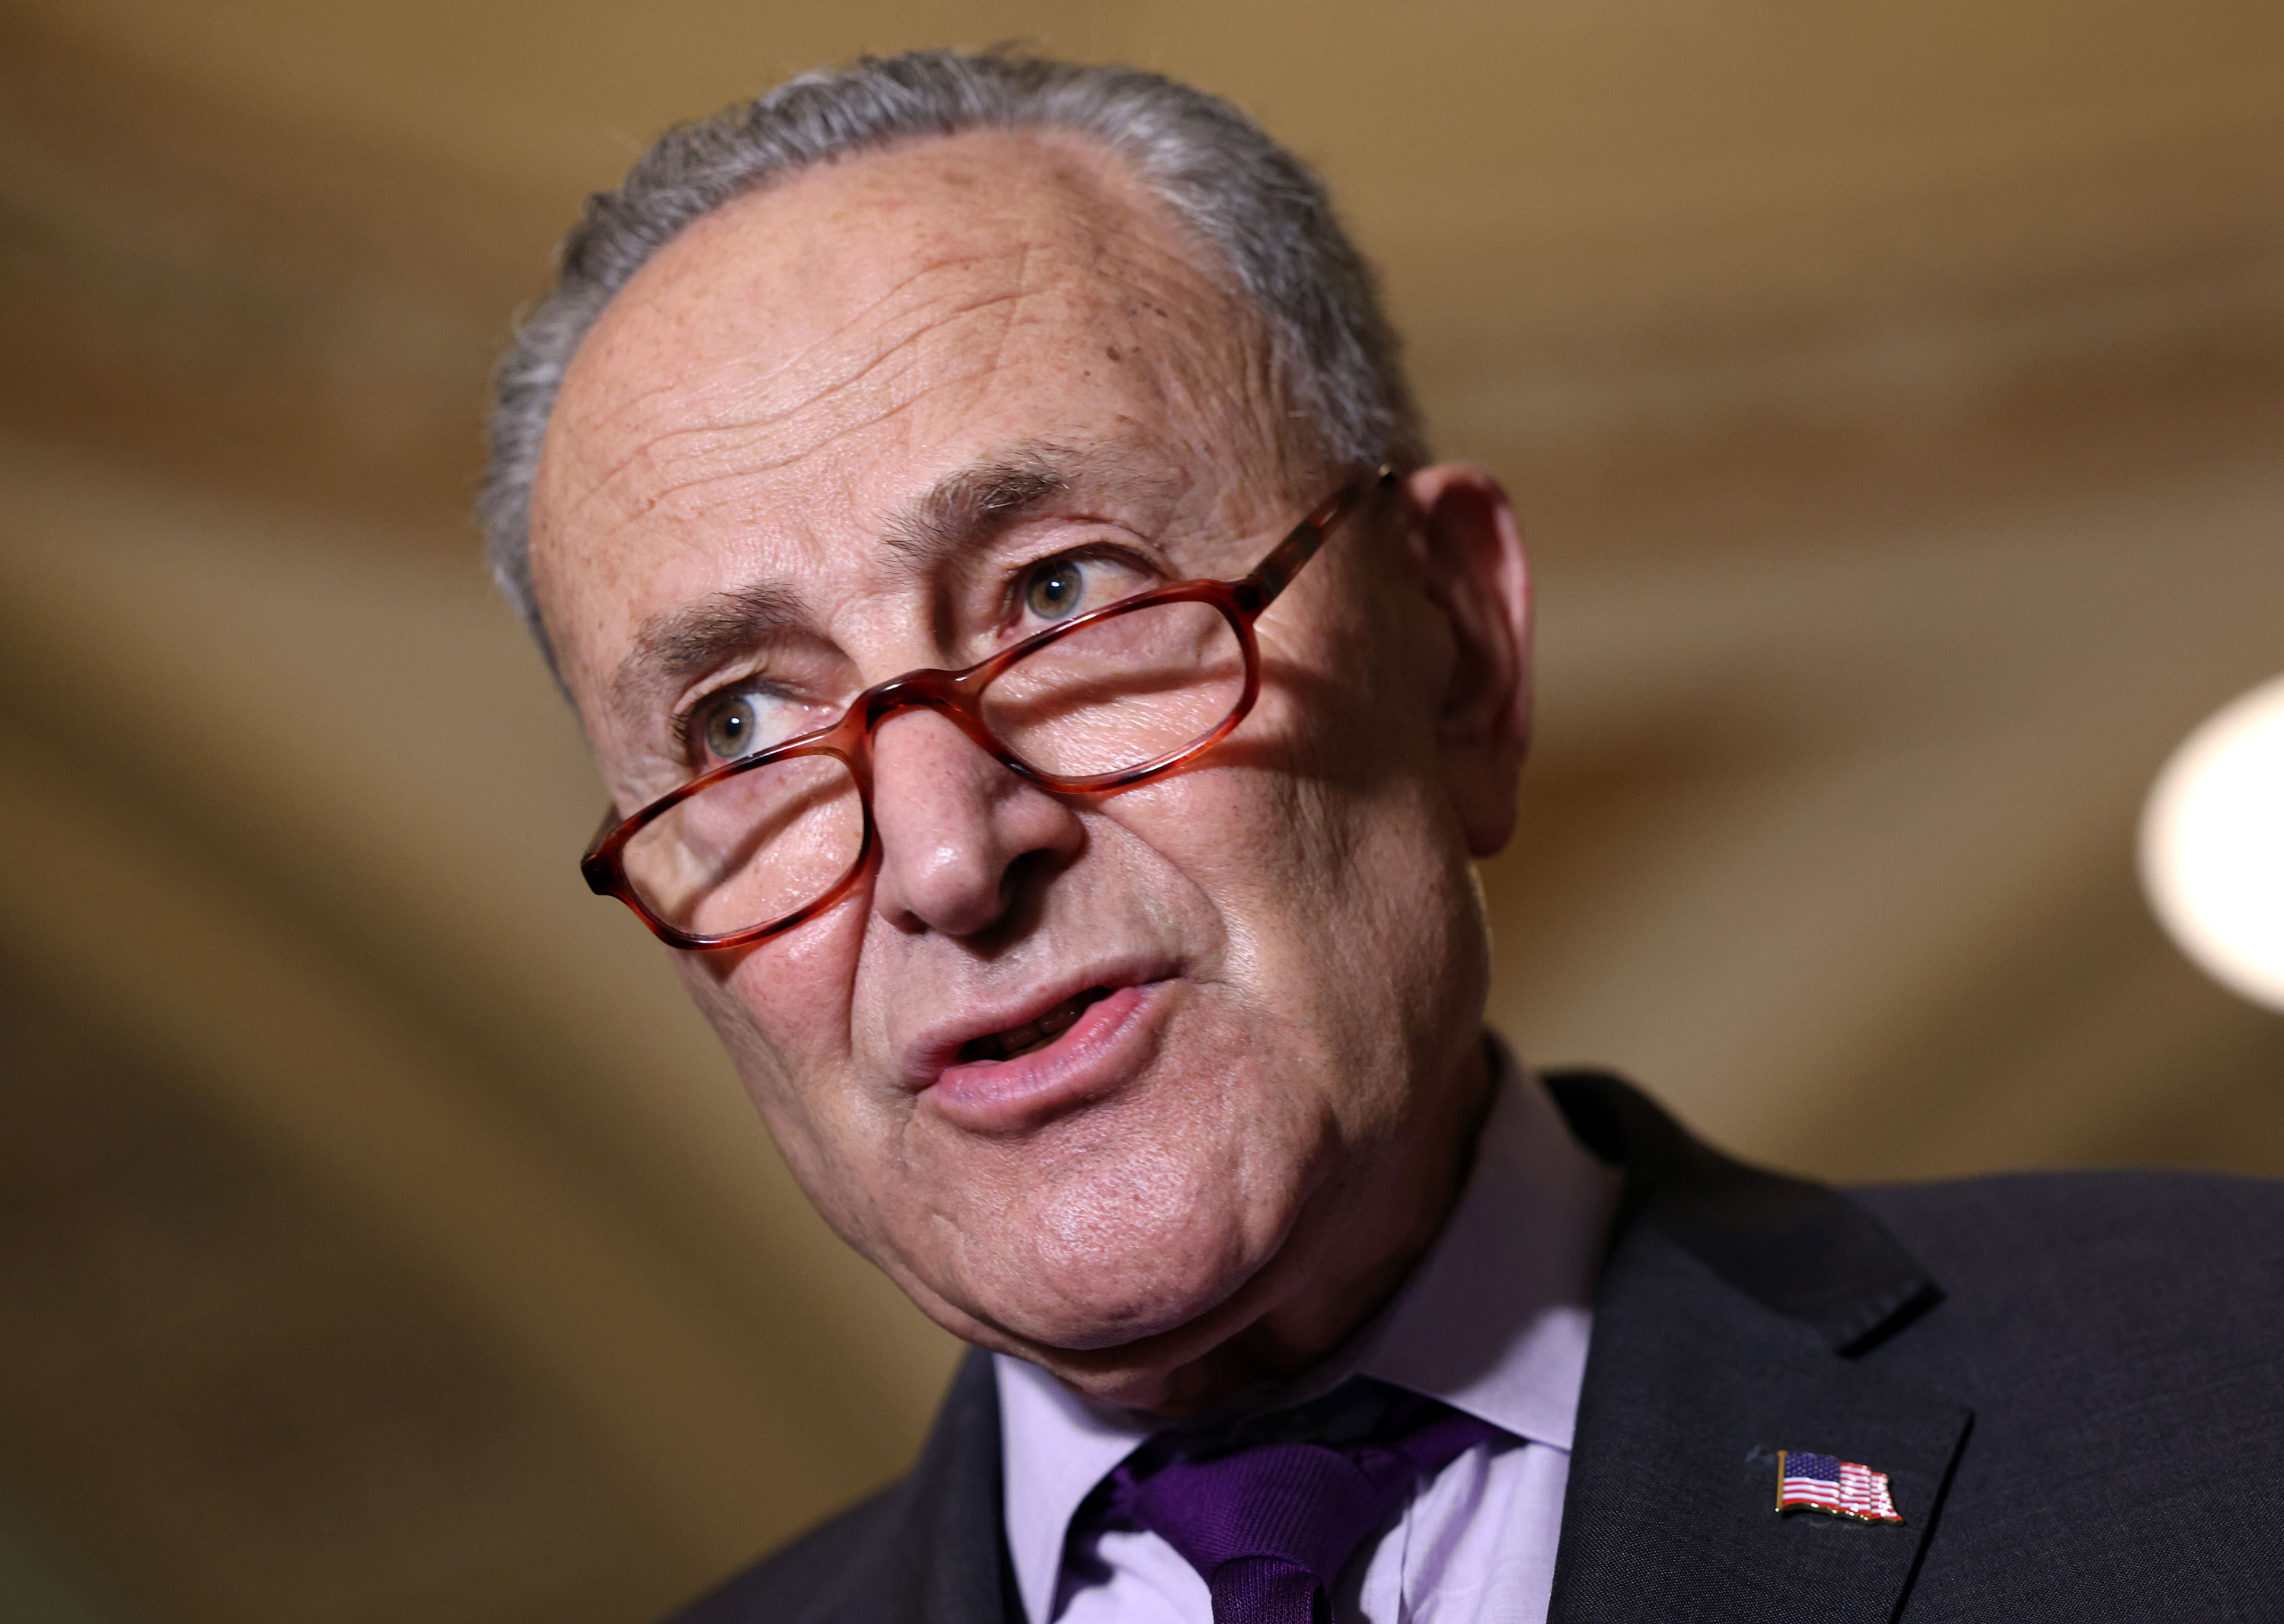 Senators say deal reached on infrastructure proposal as bipartisan agenda faces make-or-break moment